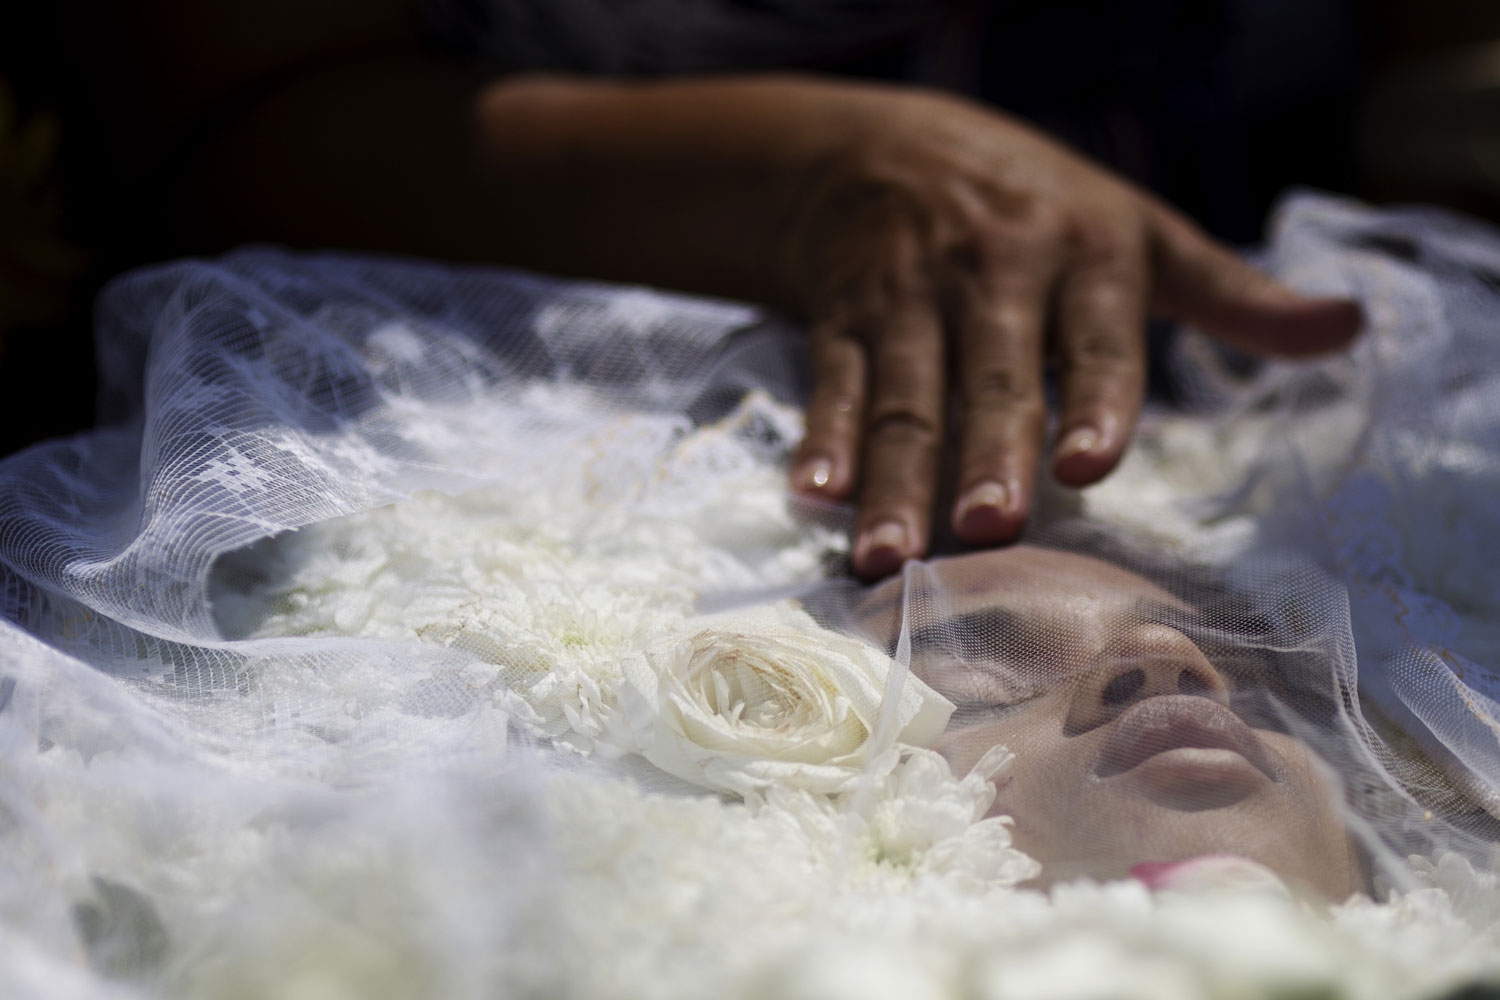 April 8, 2011. A relative mourns over the body of 14-year-old Luiza Paula da Silveira Machado during her funeral at the Jardim da Saudade cemetery in Rio de Janeiro, Brazil. Brazilian families began burying the 12 children gunned down in the halls of their elementary school Thursday. Luiza is one of ten girls and two boys between the ages of 12 and 15 who were killed by 23-year-old Wellington Oliveira, who shot and killed himself after being confronted by police.